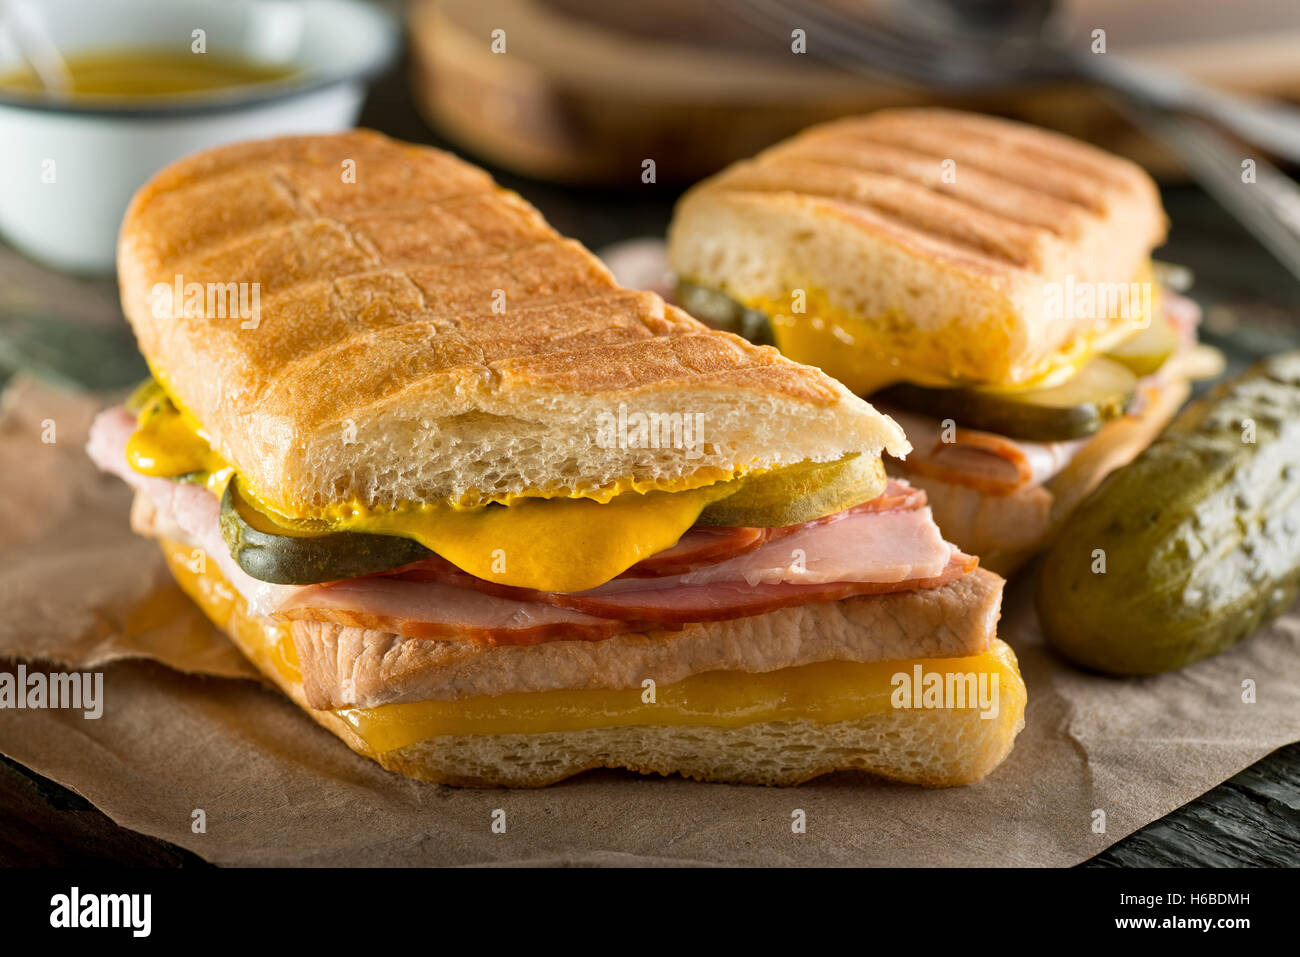 An authentic cuban sandwich on pressed medianoche bread with pork, ham, cheese, pickle, and mustard. - Stock Image